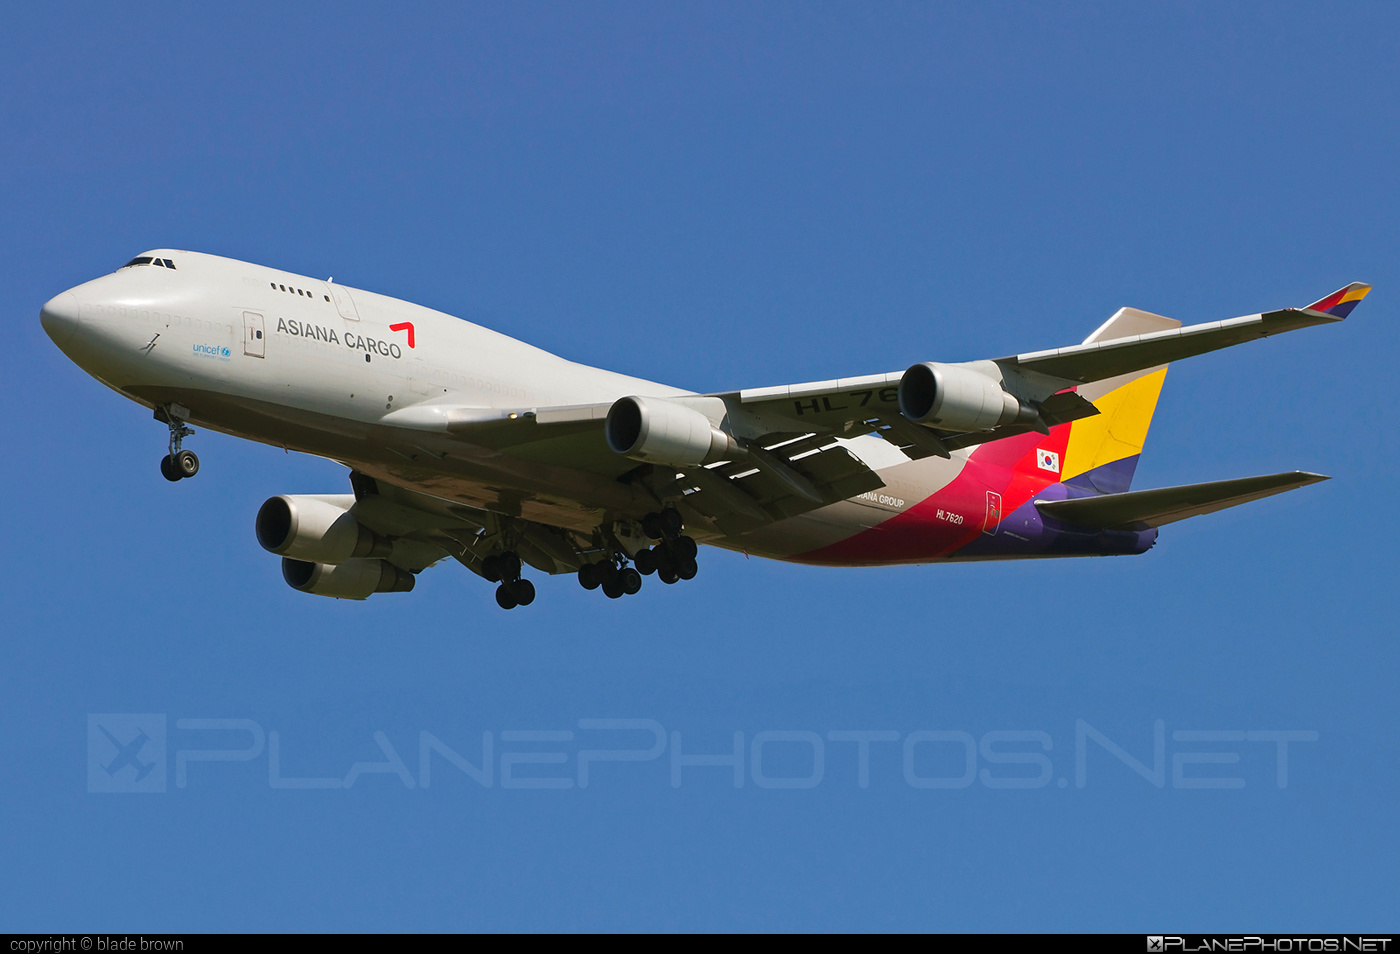 Boeing 747-400BDSF - HL7620 operated by Asiana Cargo #asianacargo #b747 #b747bdsf #b747freighter #bedekspecialfreighter #boeing #boeing747 #jumbo